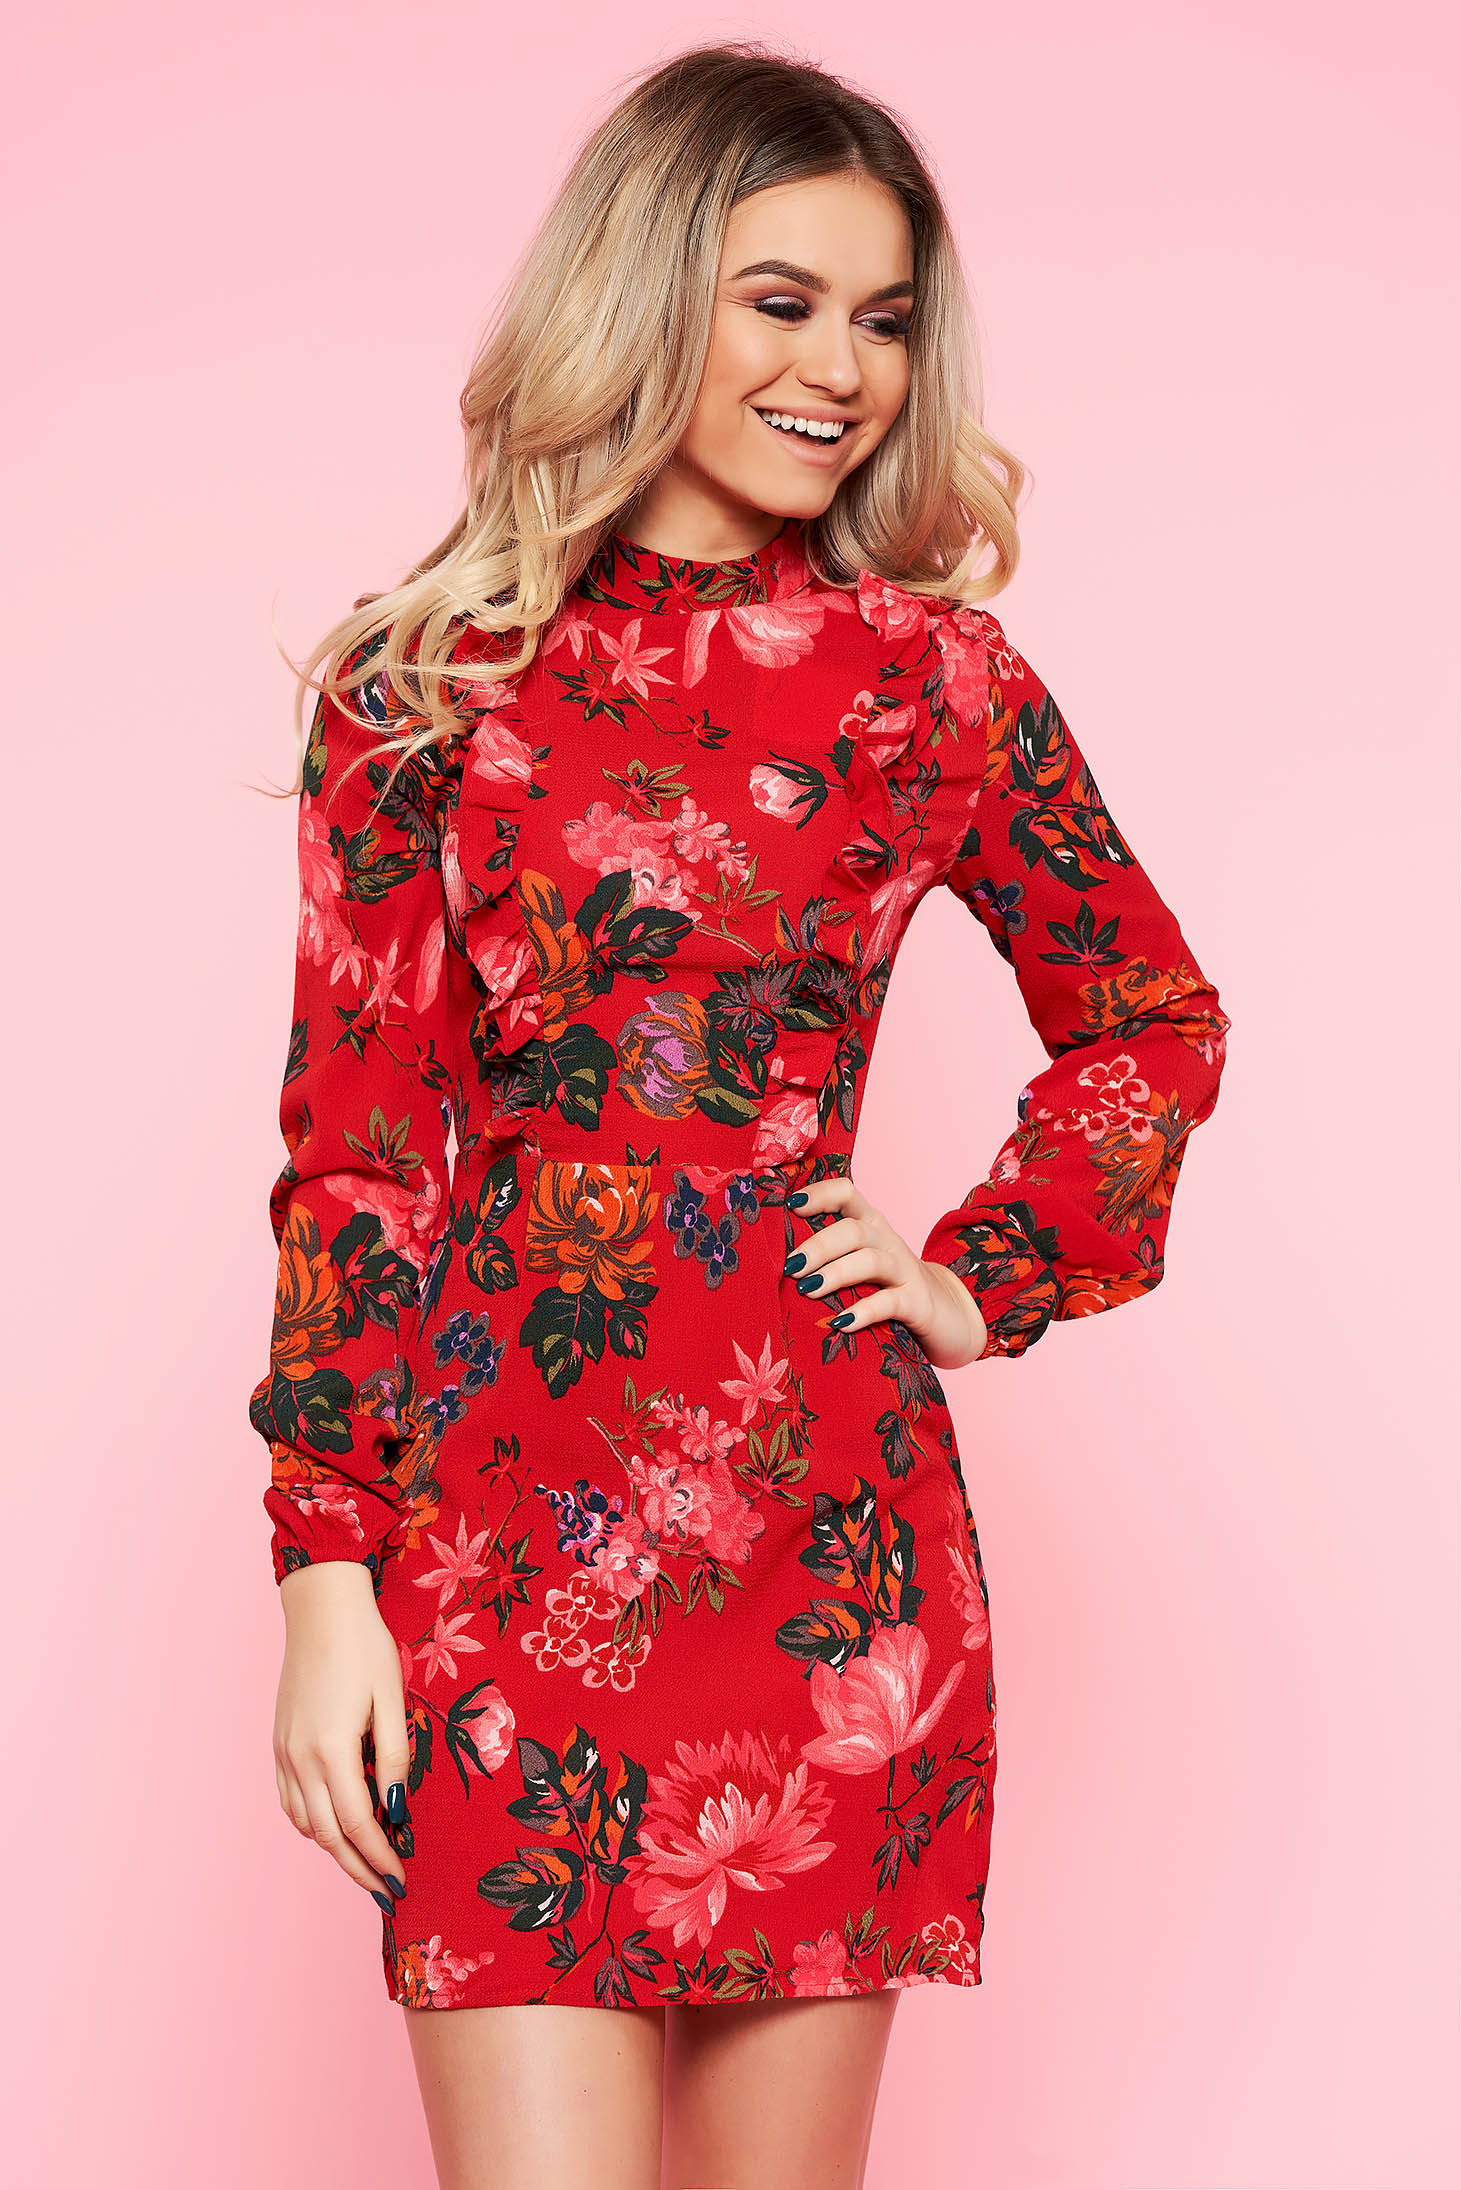 Top Secret red casual cloche dress nonelastic fabric with ruffle details with floral prints